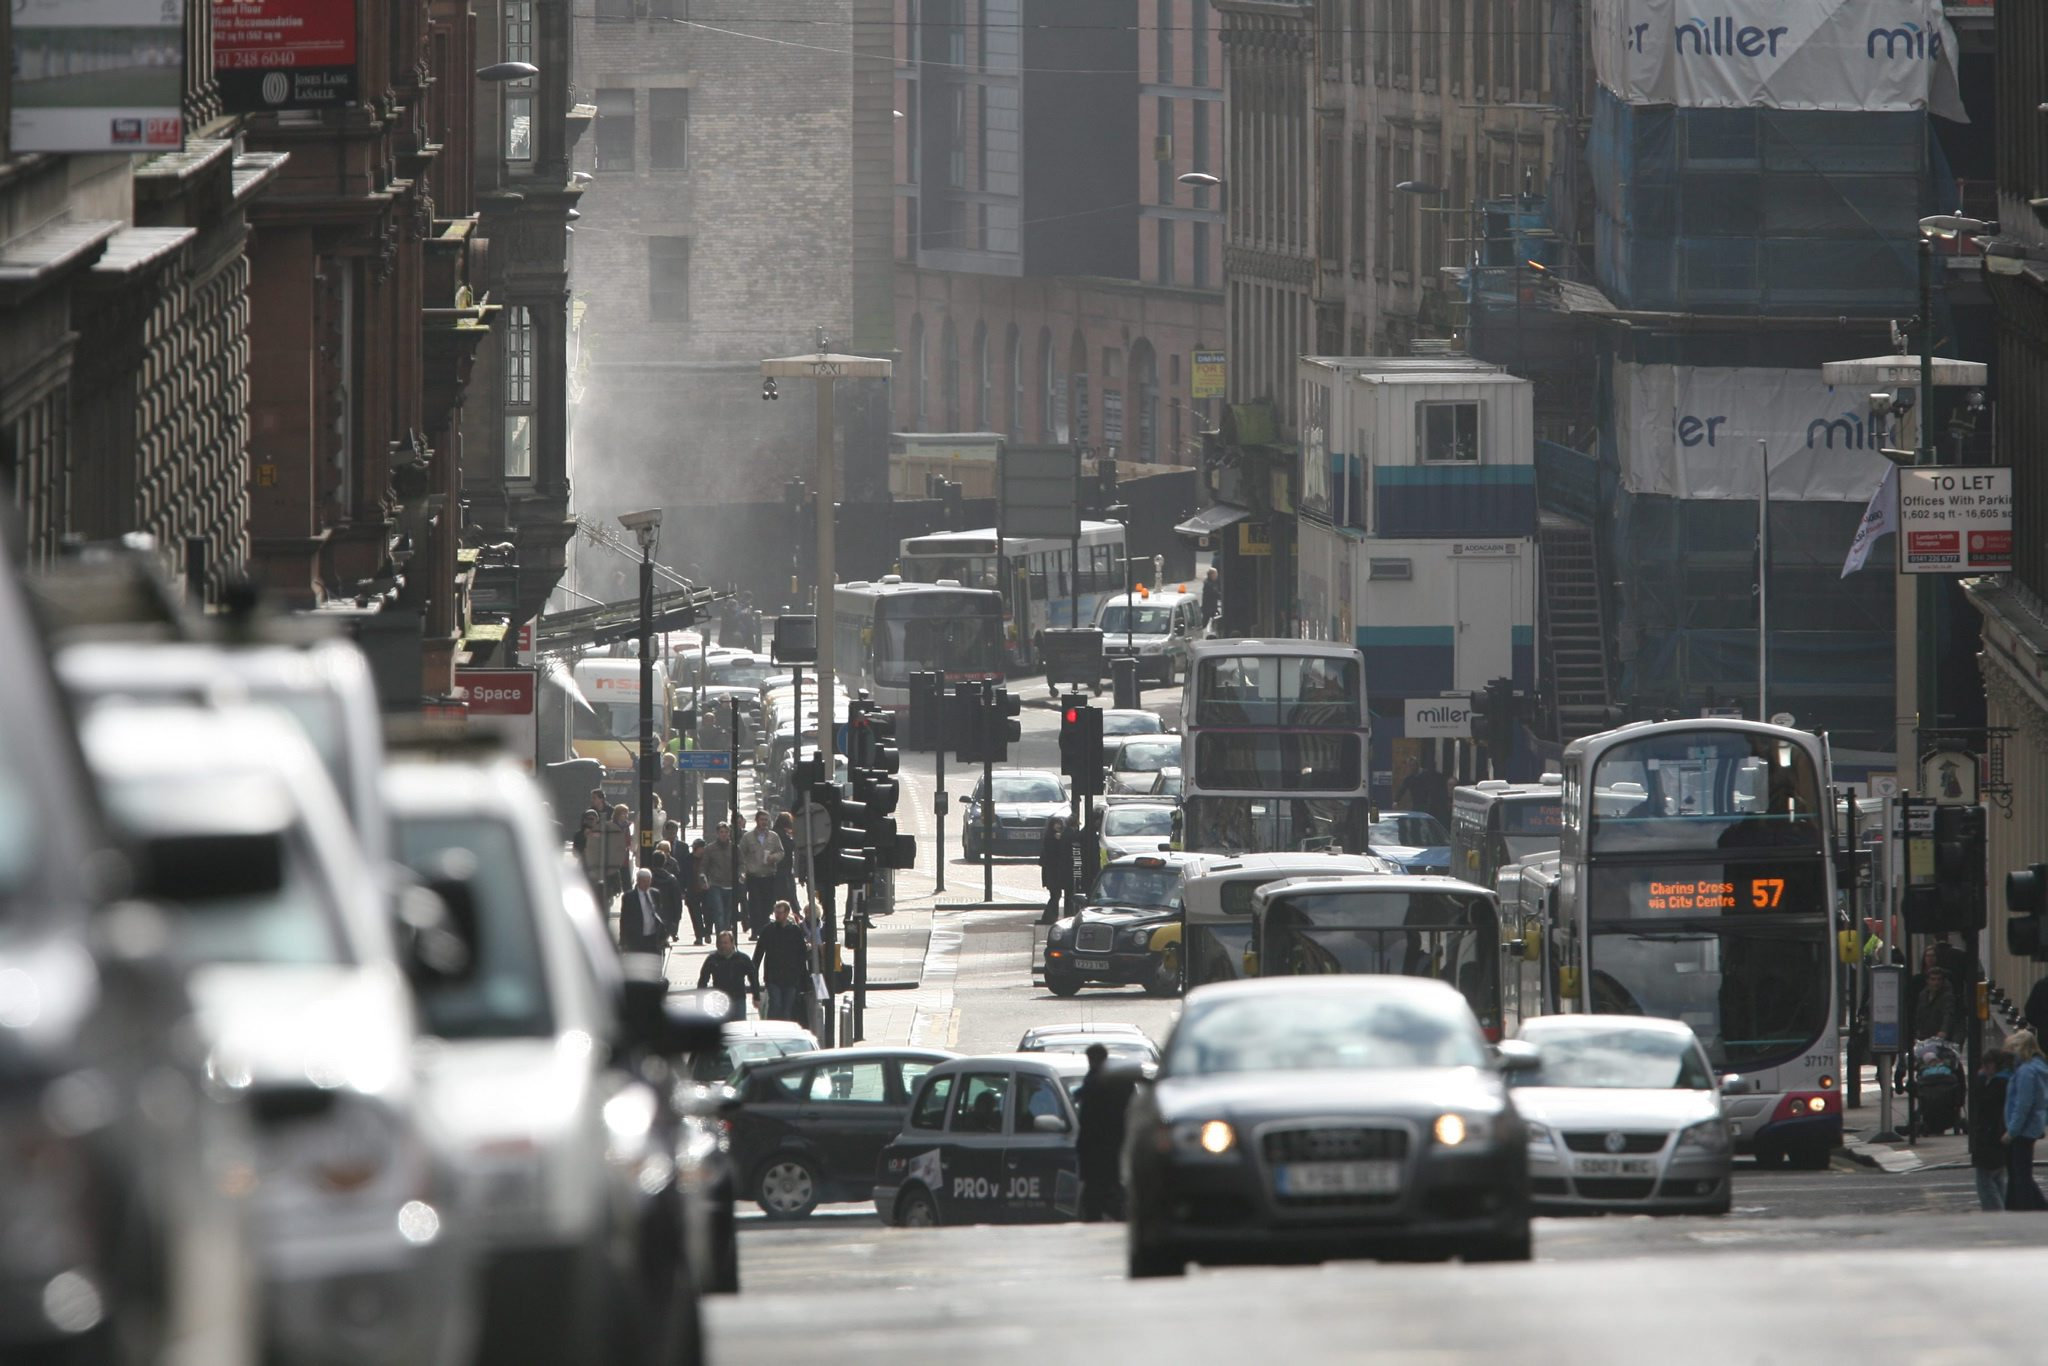 Glasgow's Hope Street found to be most polluted in Scotland